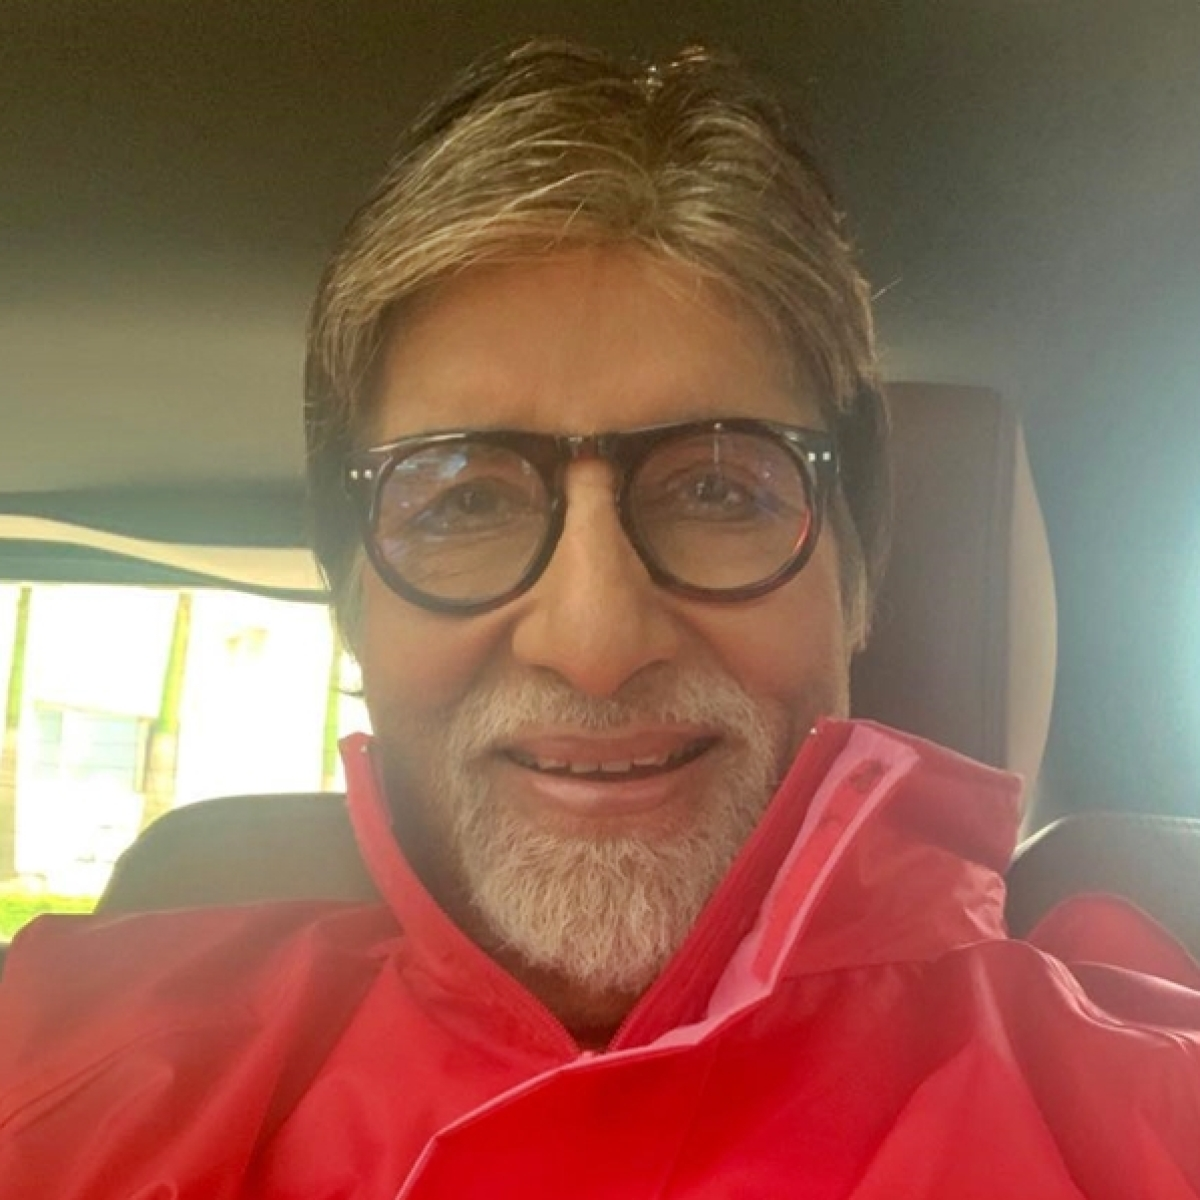 Amitabh Bachchan's 2010 tweet about 'bra', 'panties' will leave you scratching your head